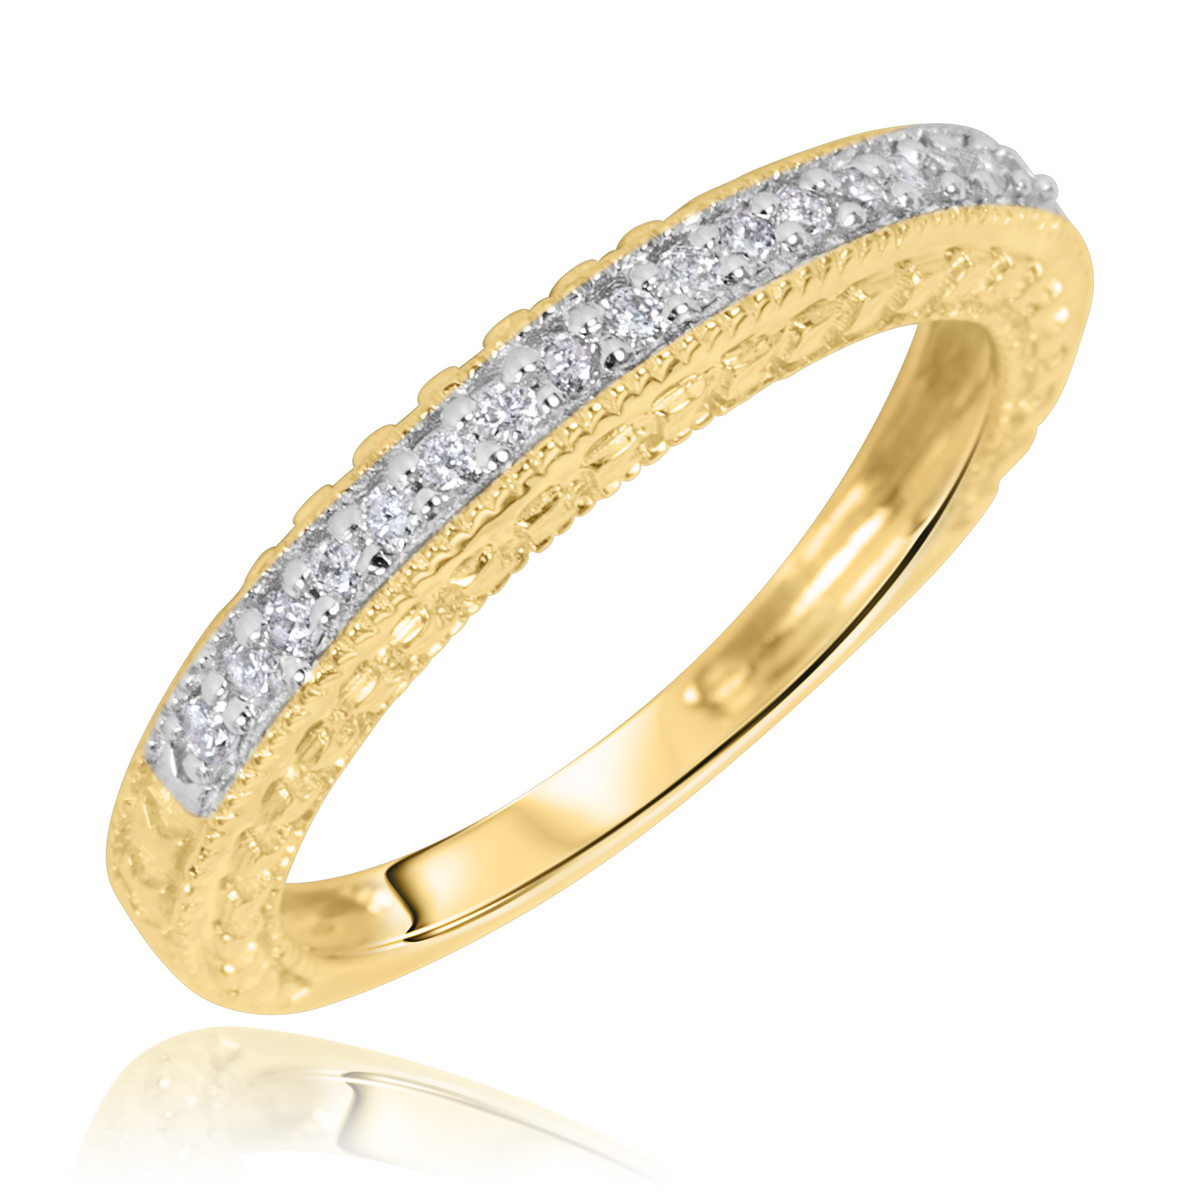 1/5 CT. T.W. Round Cut Diamond Ladies Wedding Band 14K Yellow Gold- Size 8